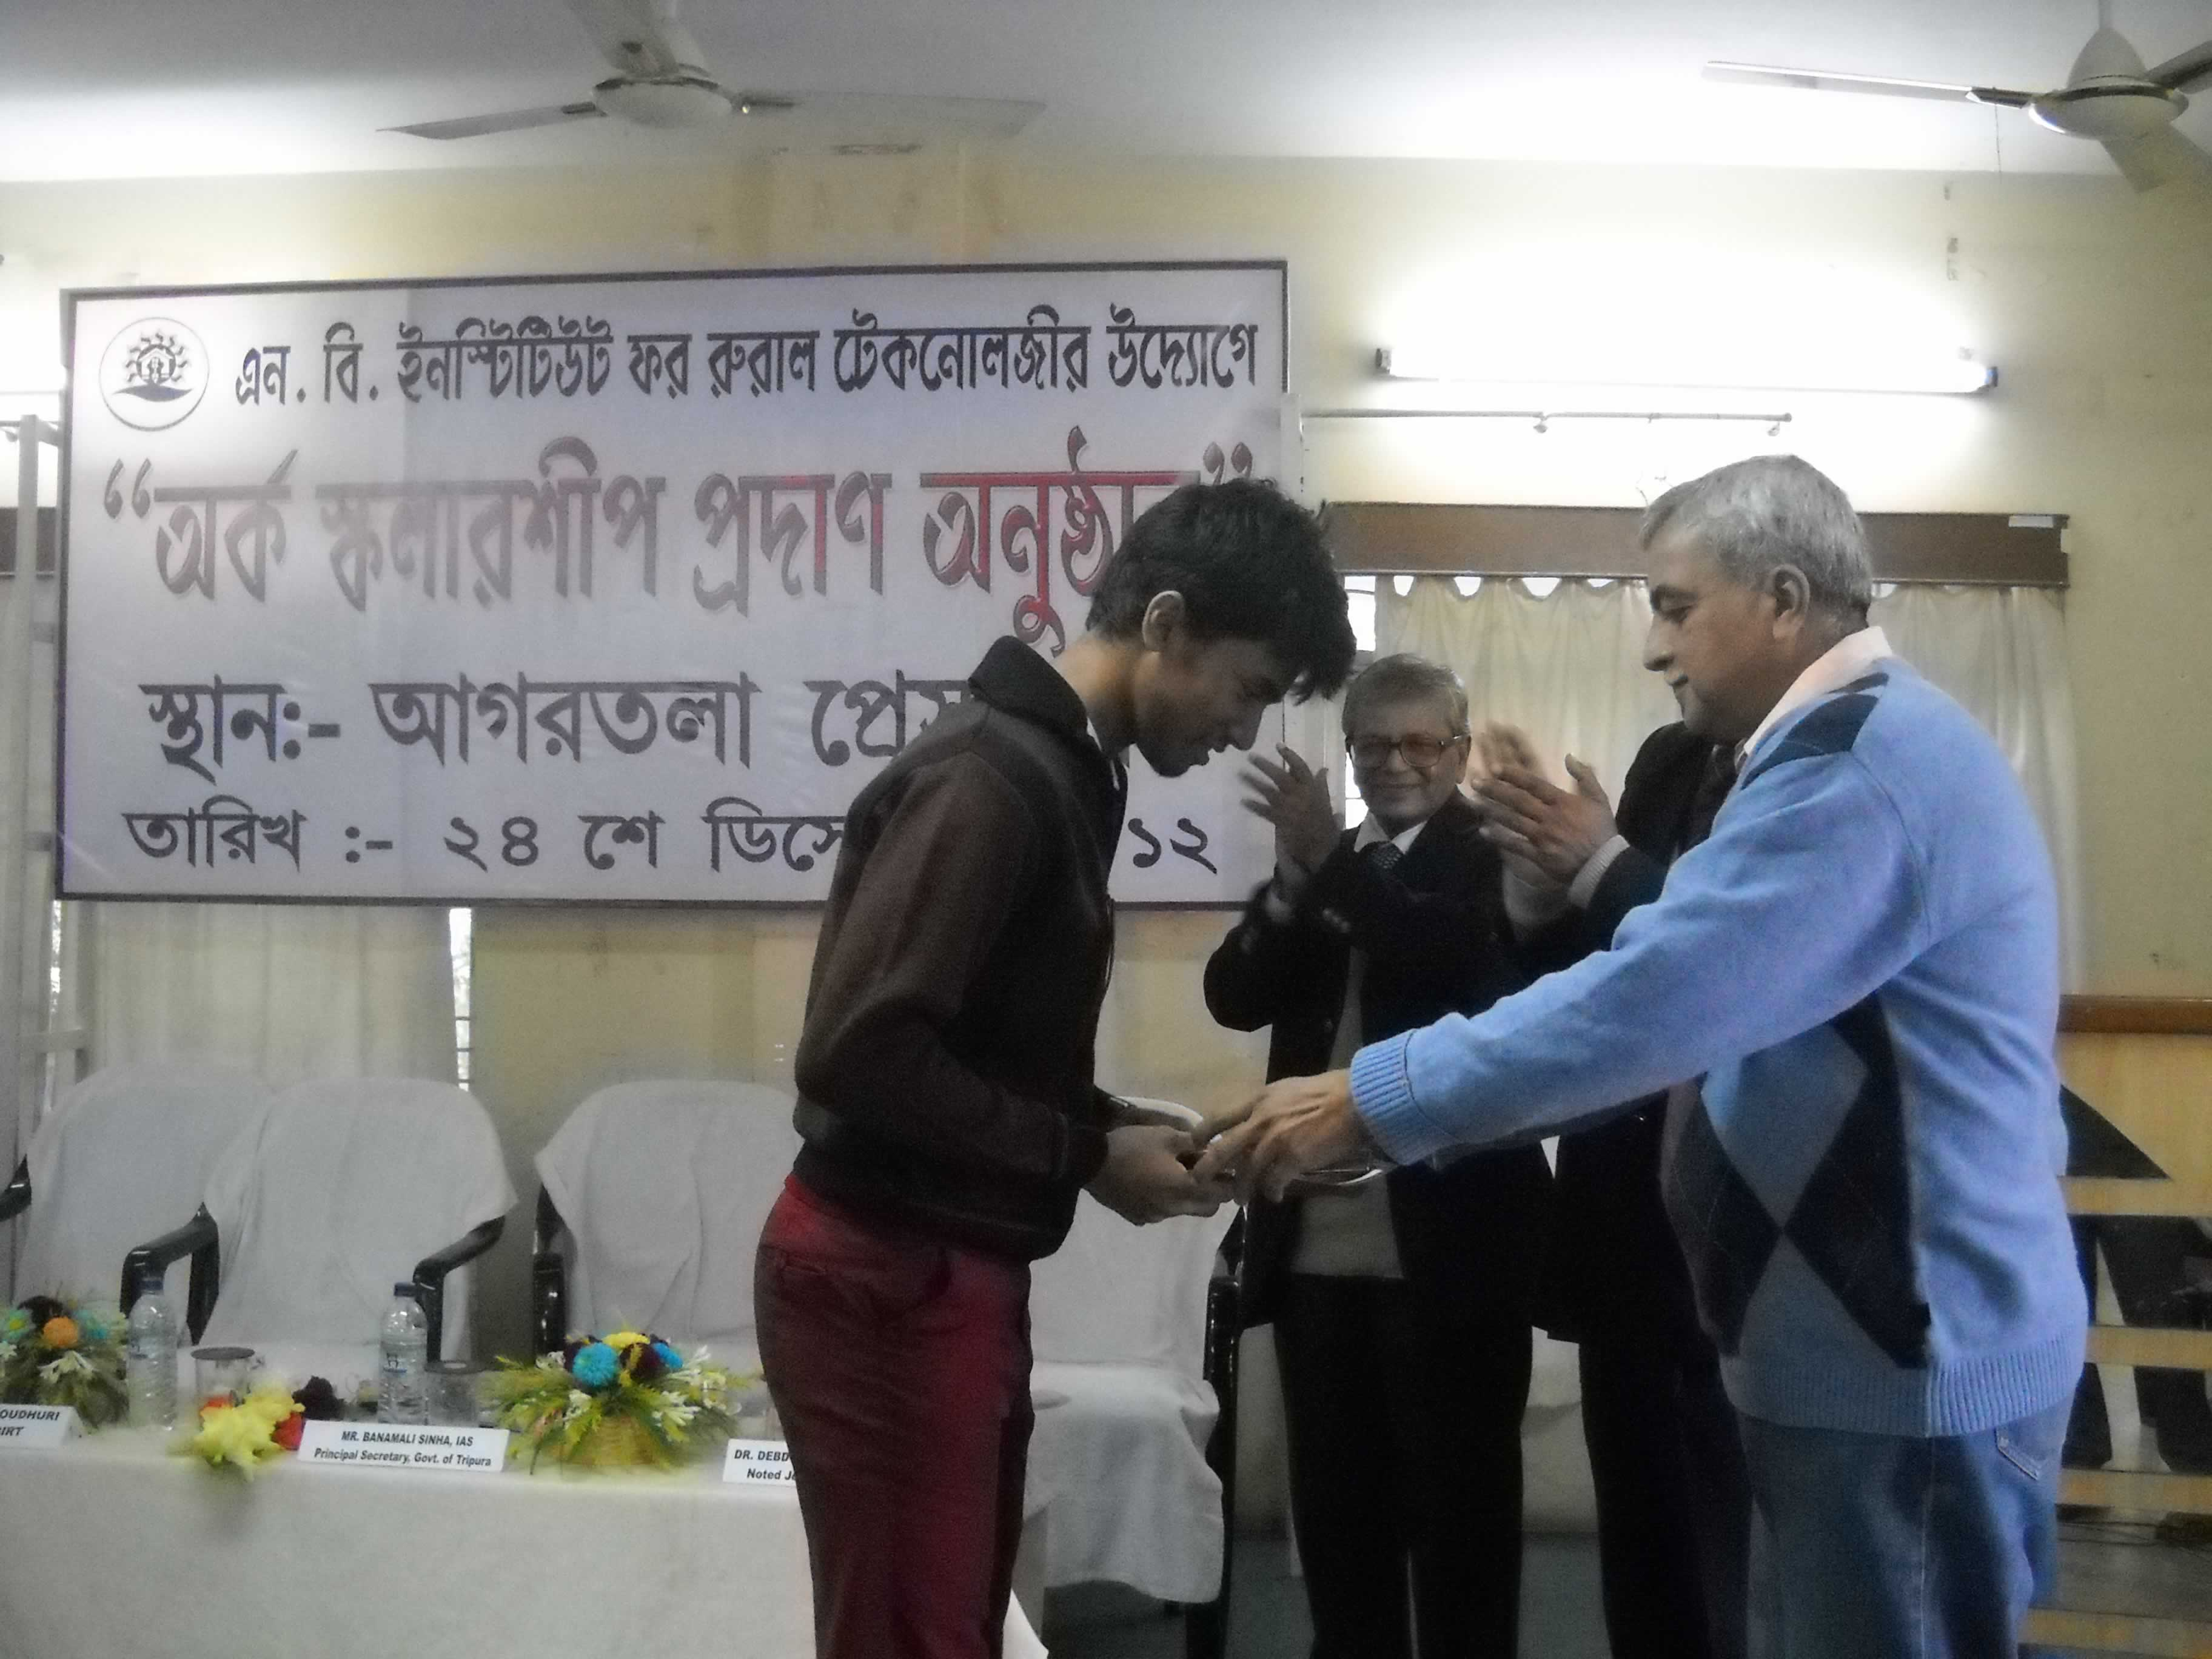 Dwaipayan Debnath received the awards from Dr. Debdoot Ghosh Thakur, Jouralist, WB